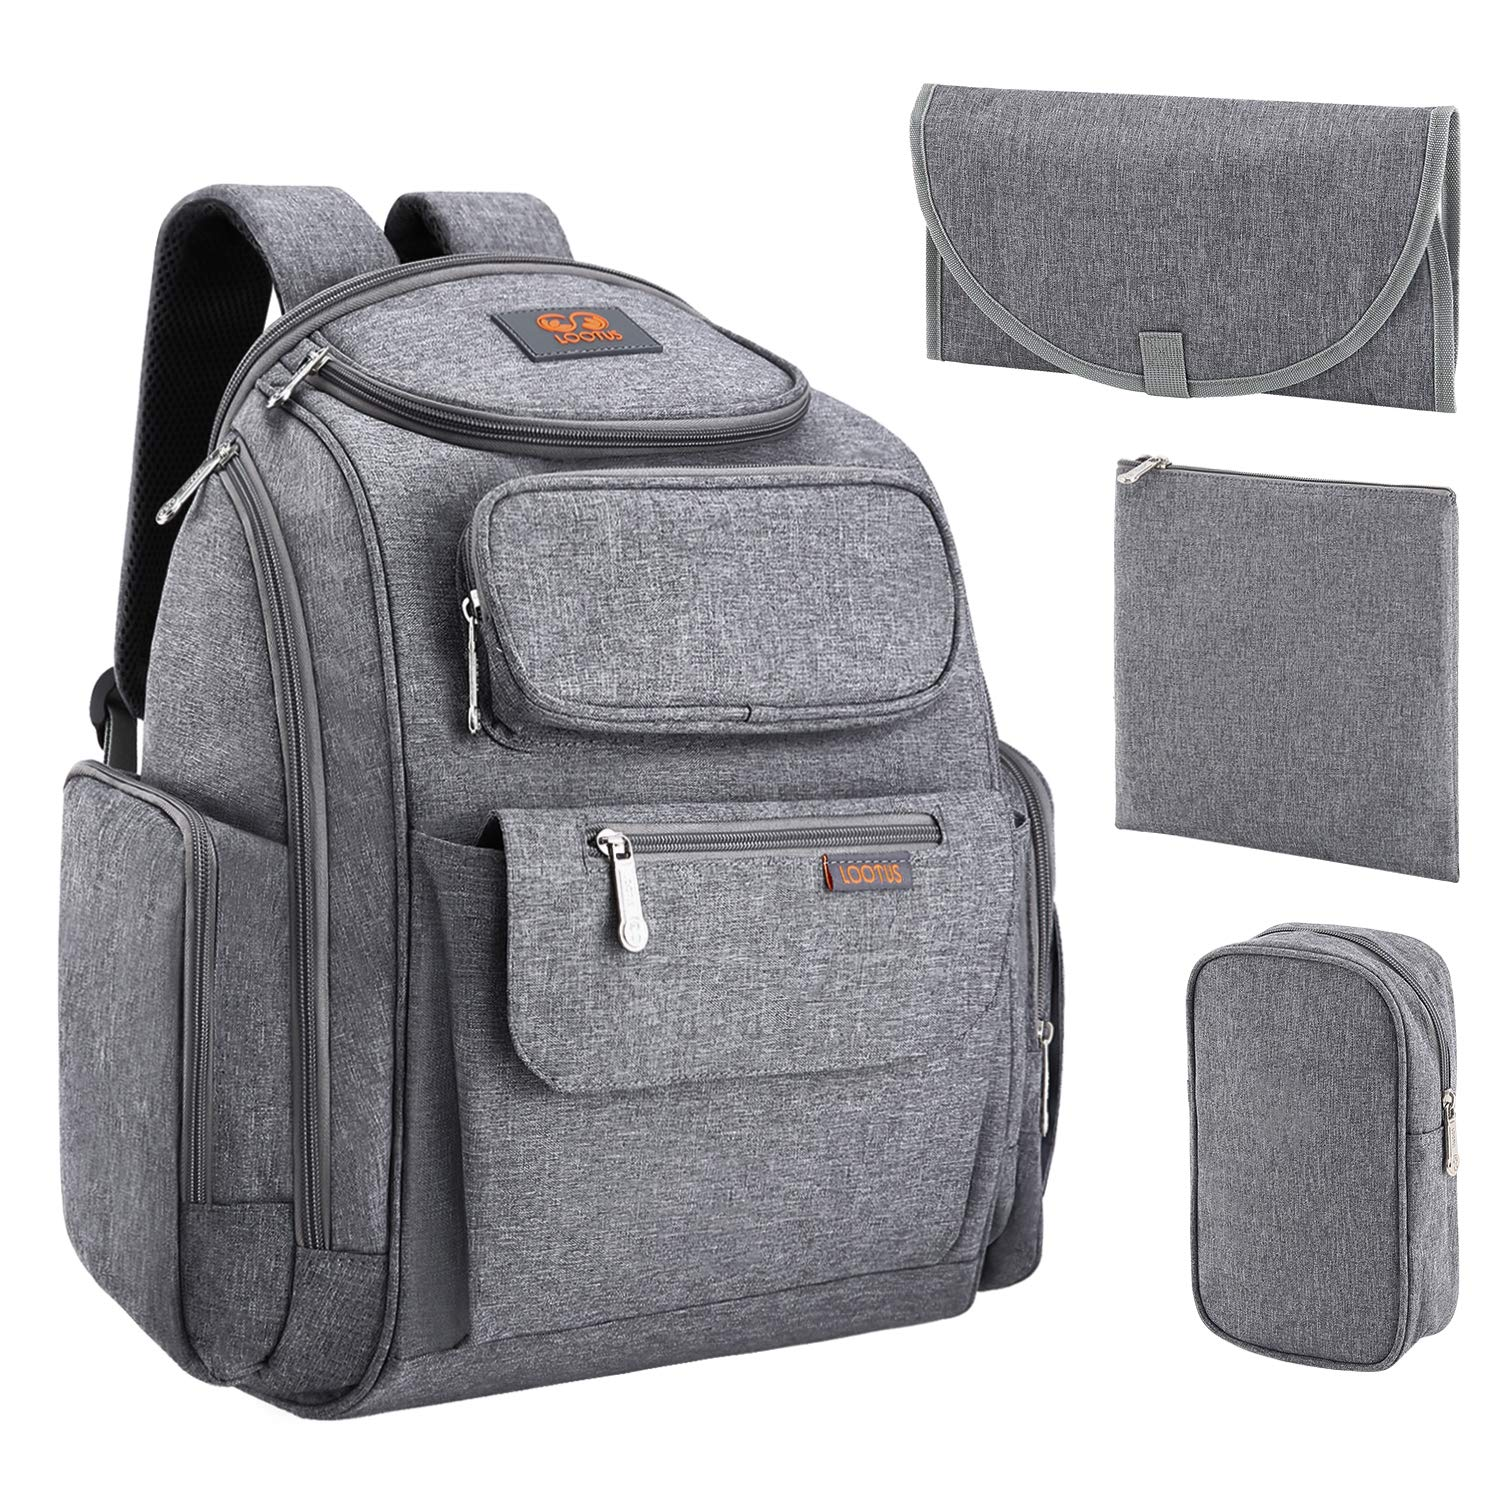 cd12c24bb52c Amazon.com   LOOTUS Diaper Bag Backpack Large Multifunction with Stroller  Straps